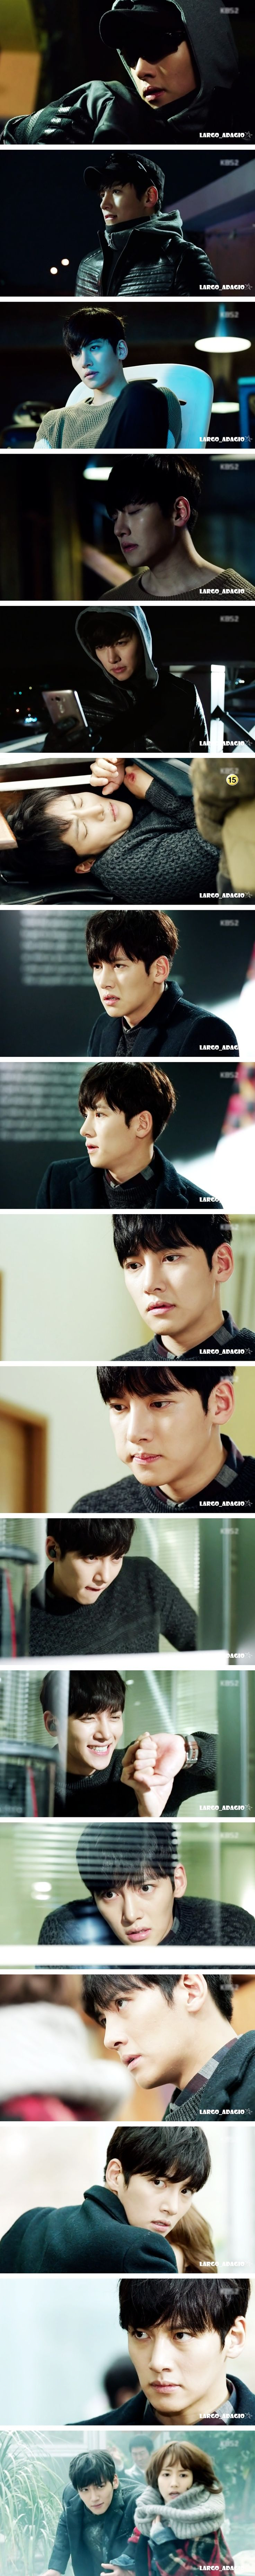 Healer (힐러) Korean - Drama - Episode 5 - Picture @ HanCinema :: The Korean Movie and Drama Database